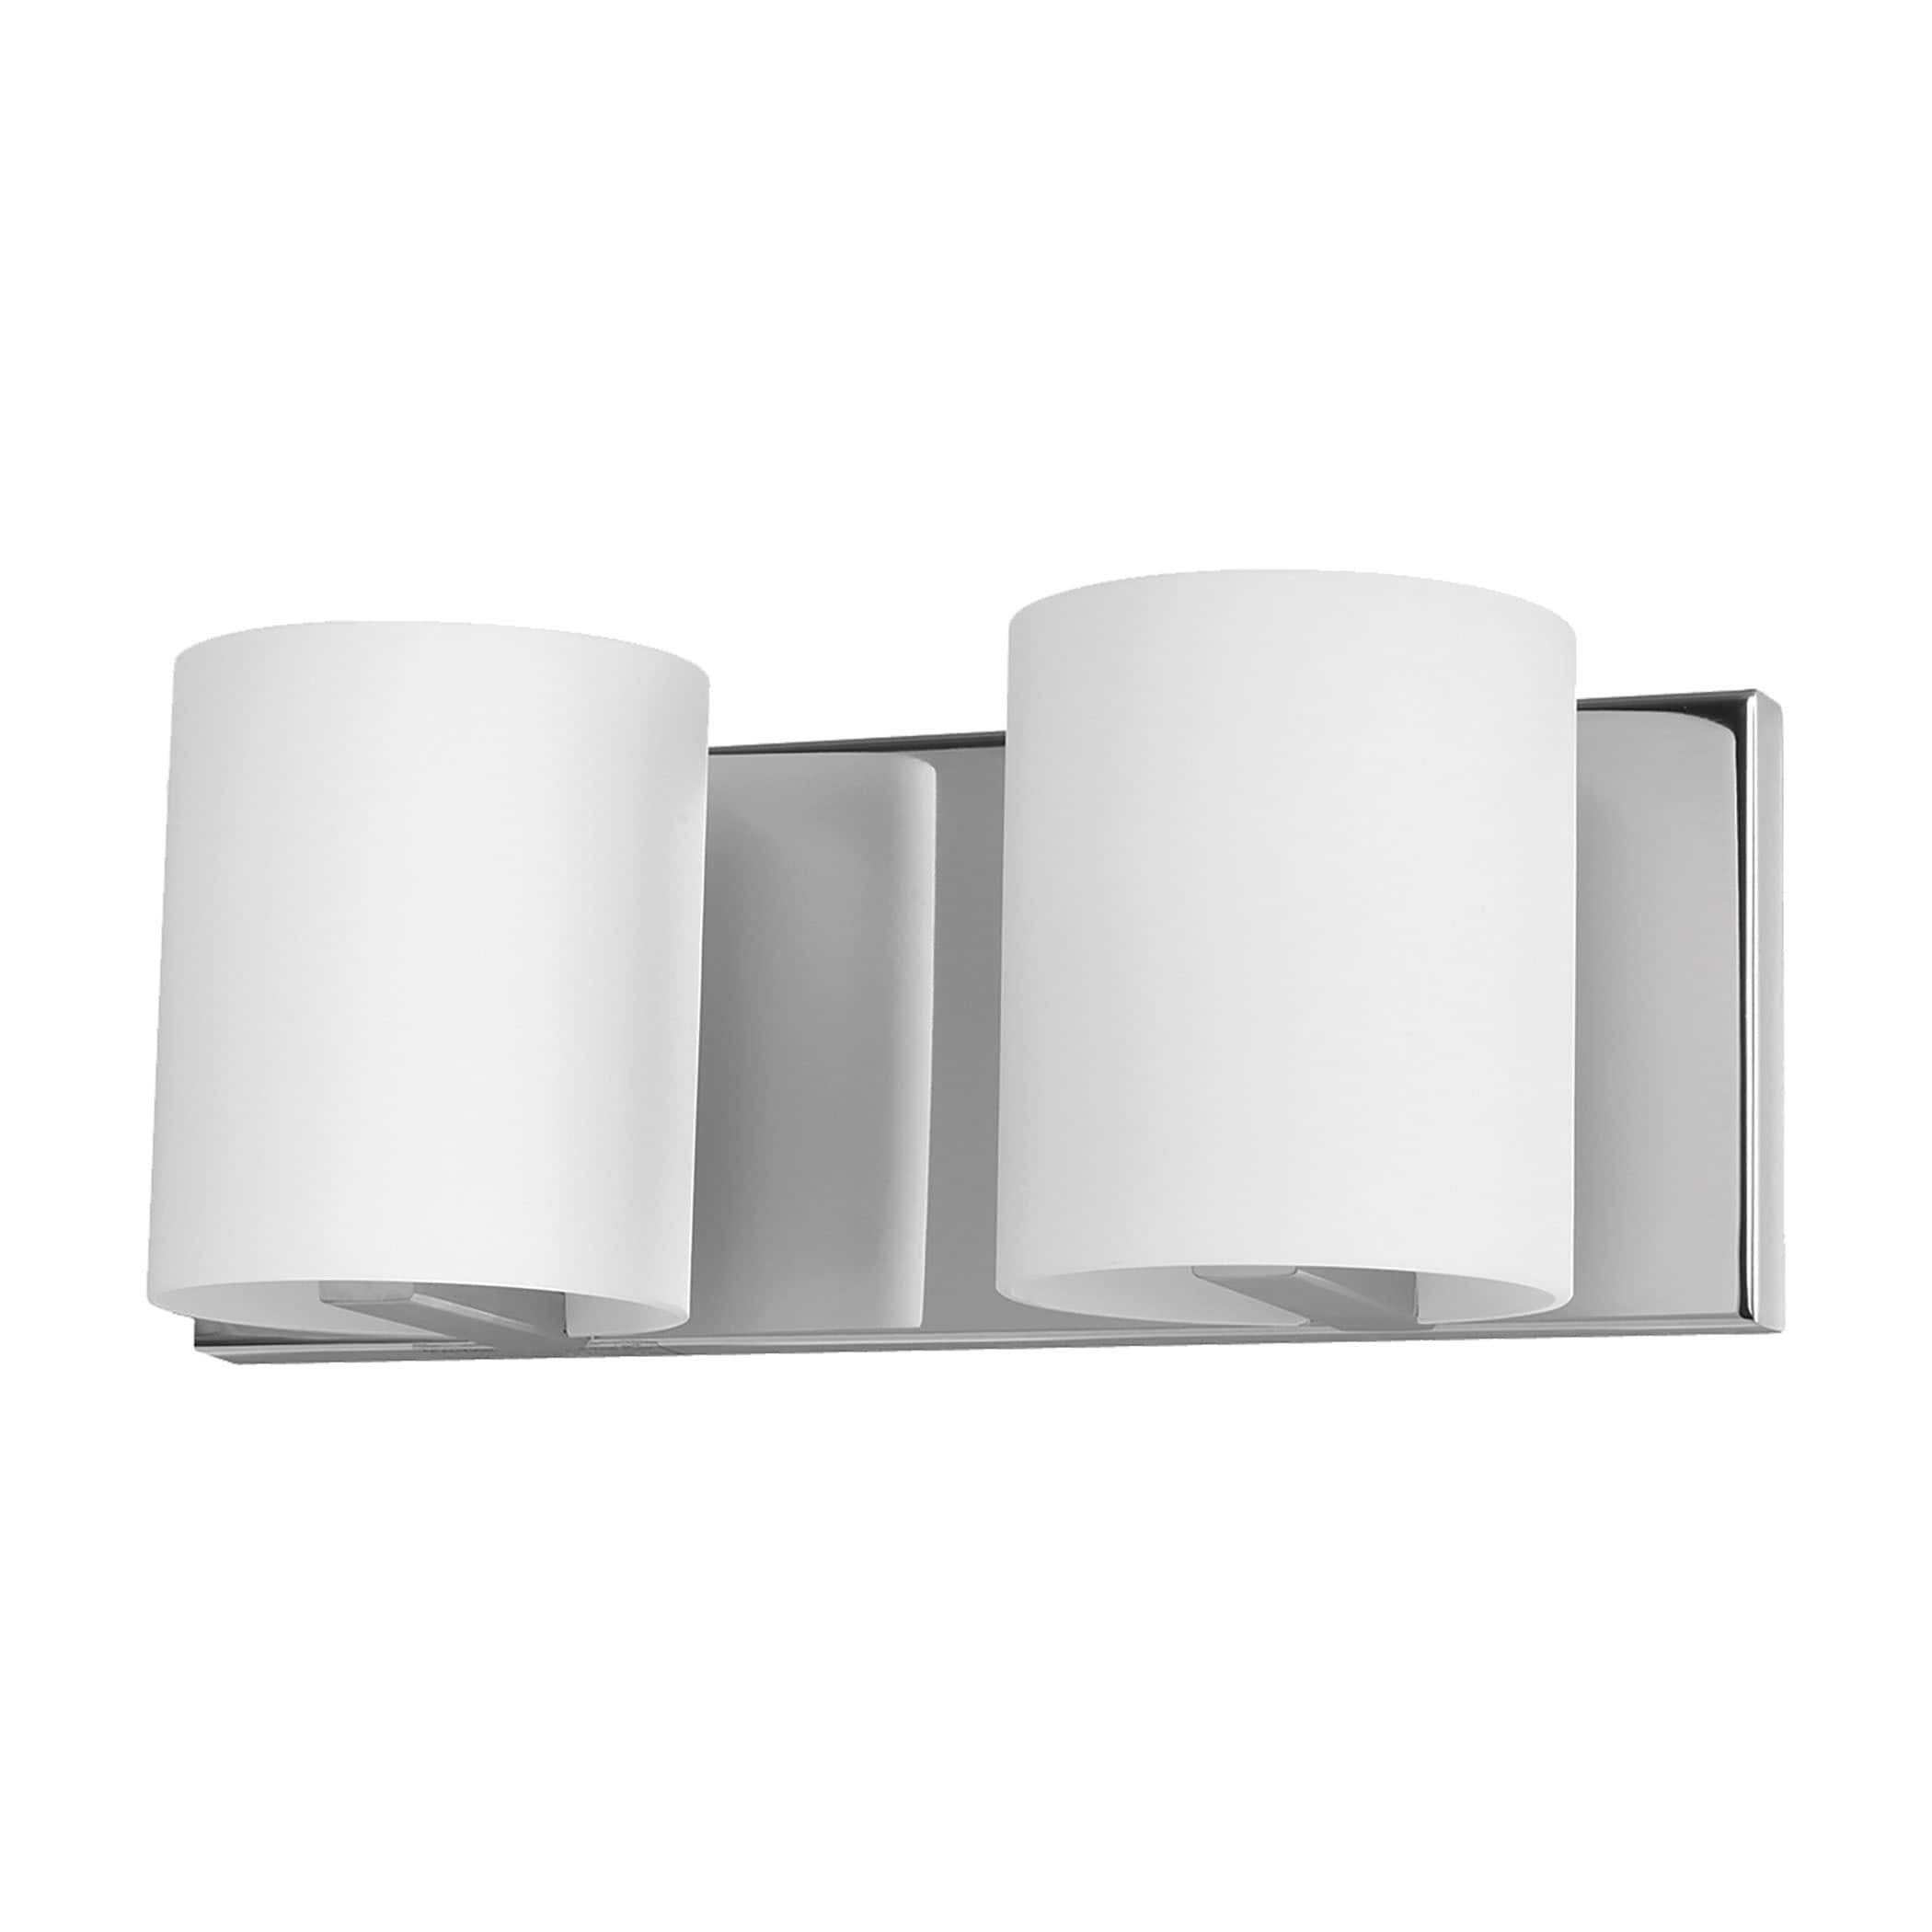 ALICO Enterprise Chrome and White Opal Glass 2-light Vani...